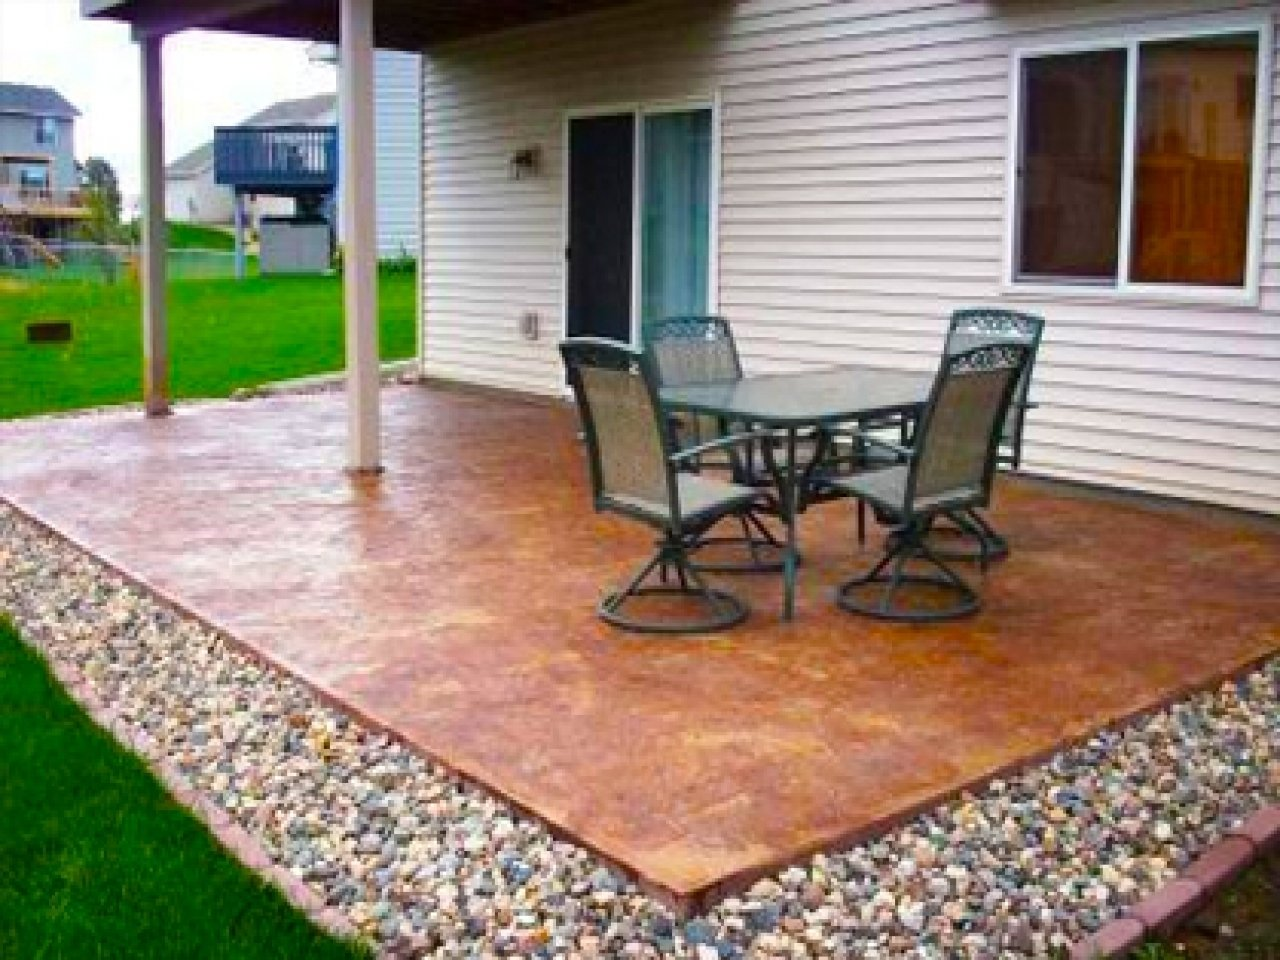 10 Lovely Patio Ideas On A Budget diy backyard patio ideas cheap makeovers for on a budget also images 2020